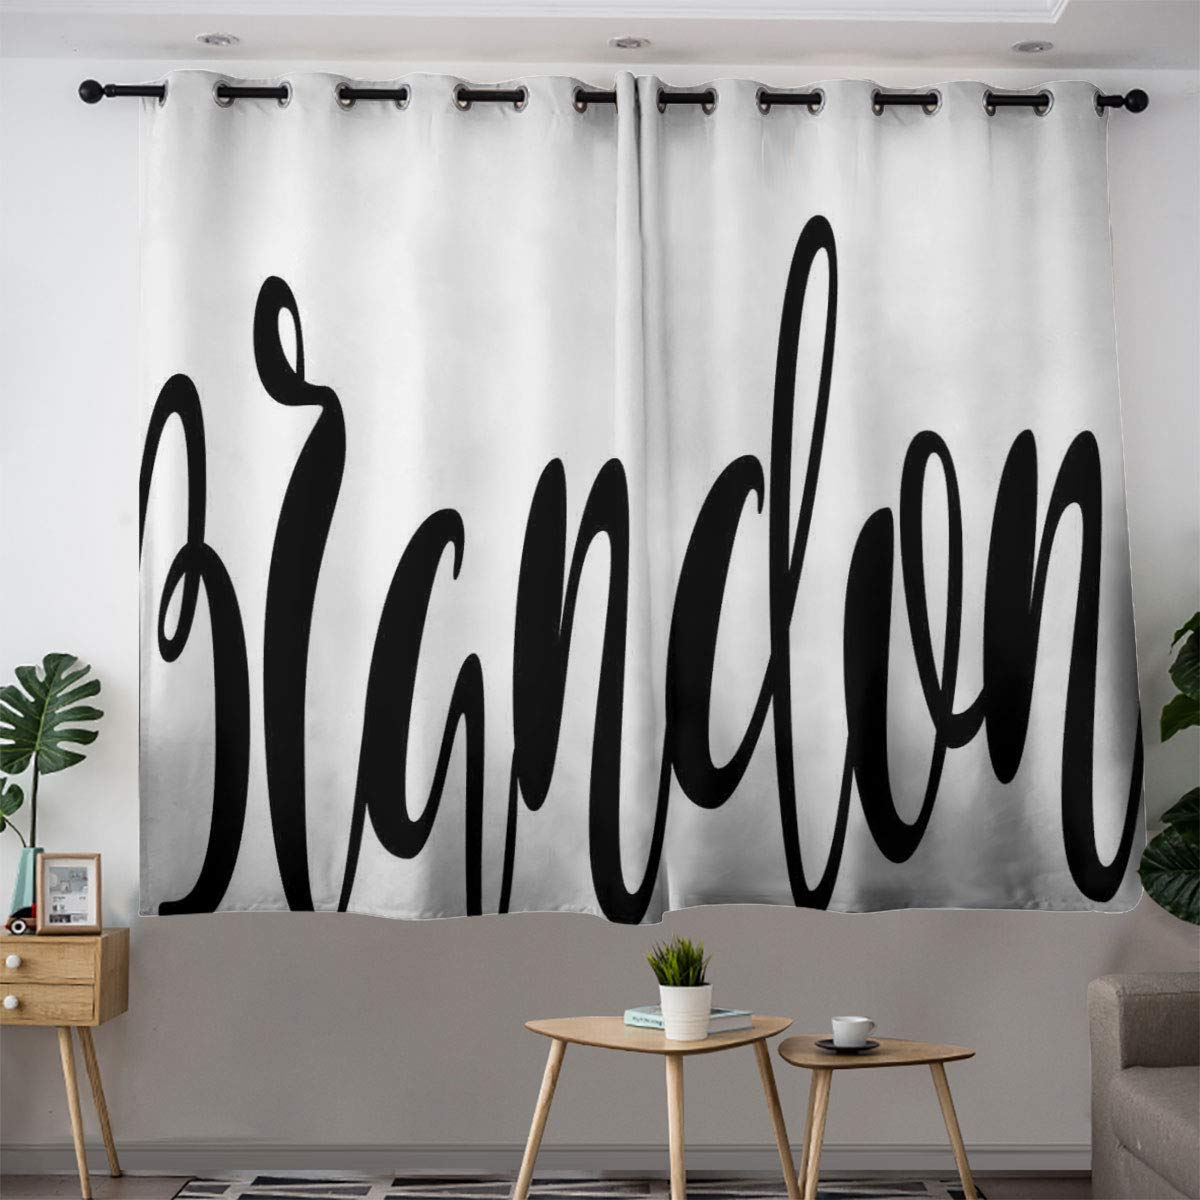 Bohogift BrandonCurtains are Super softWidespread Name Design with Monochrome Artistic Letters Cursive Font PatternCourtyard Door curtain55×72'' Black and White